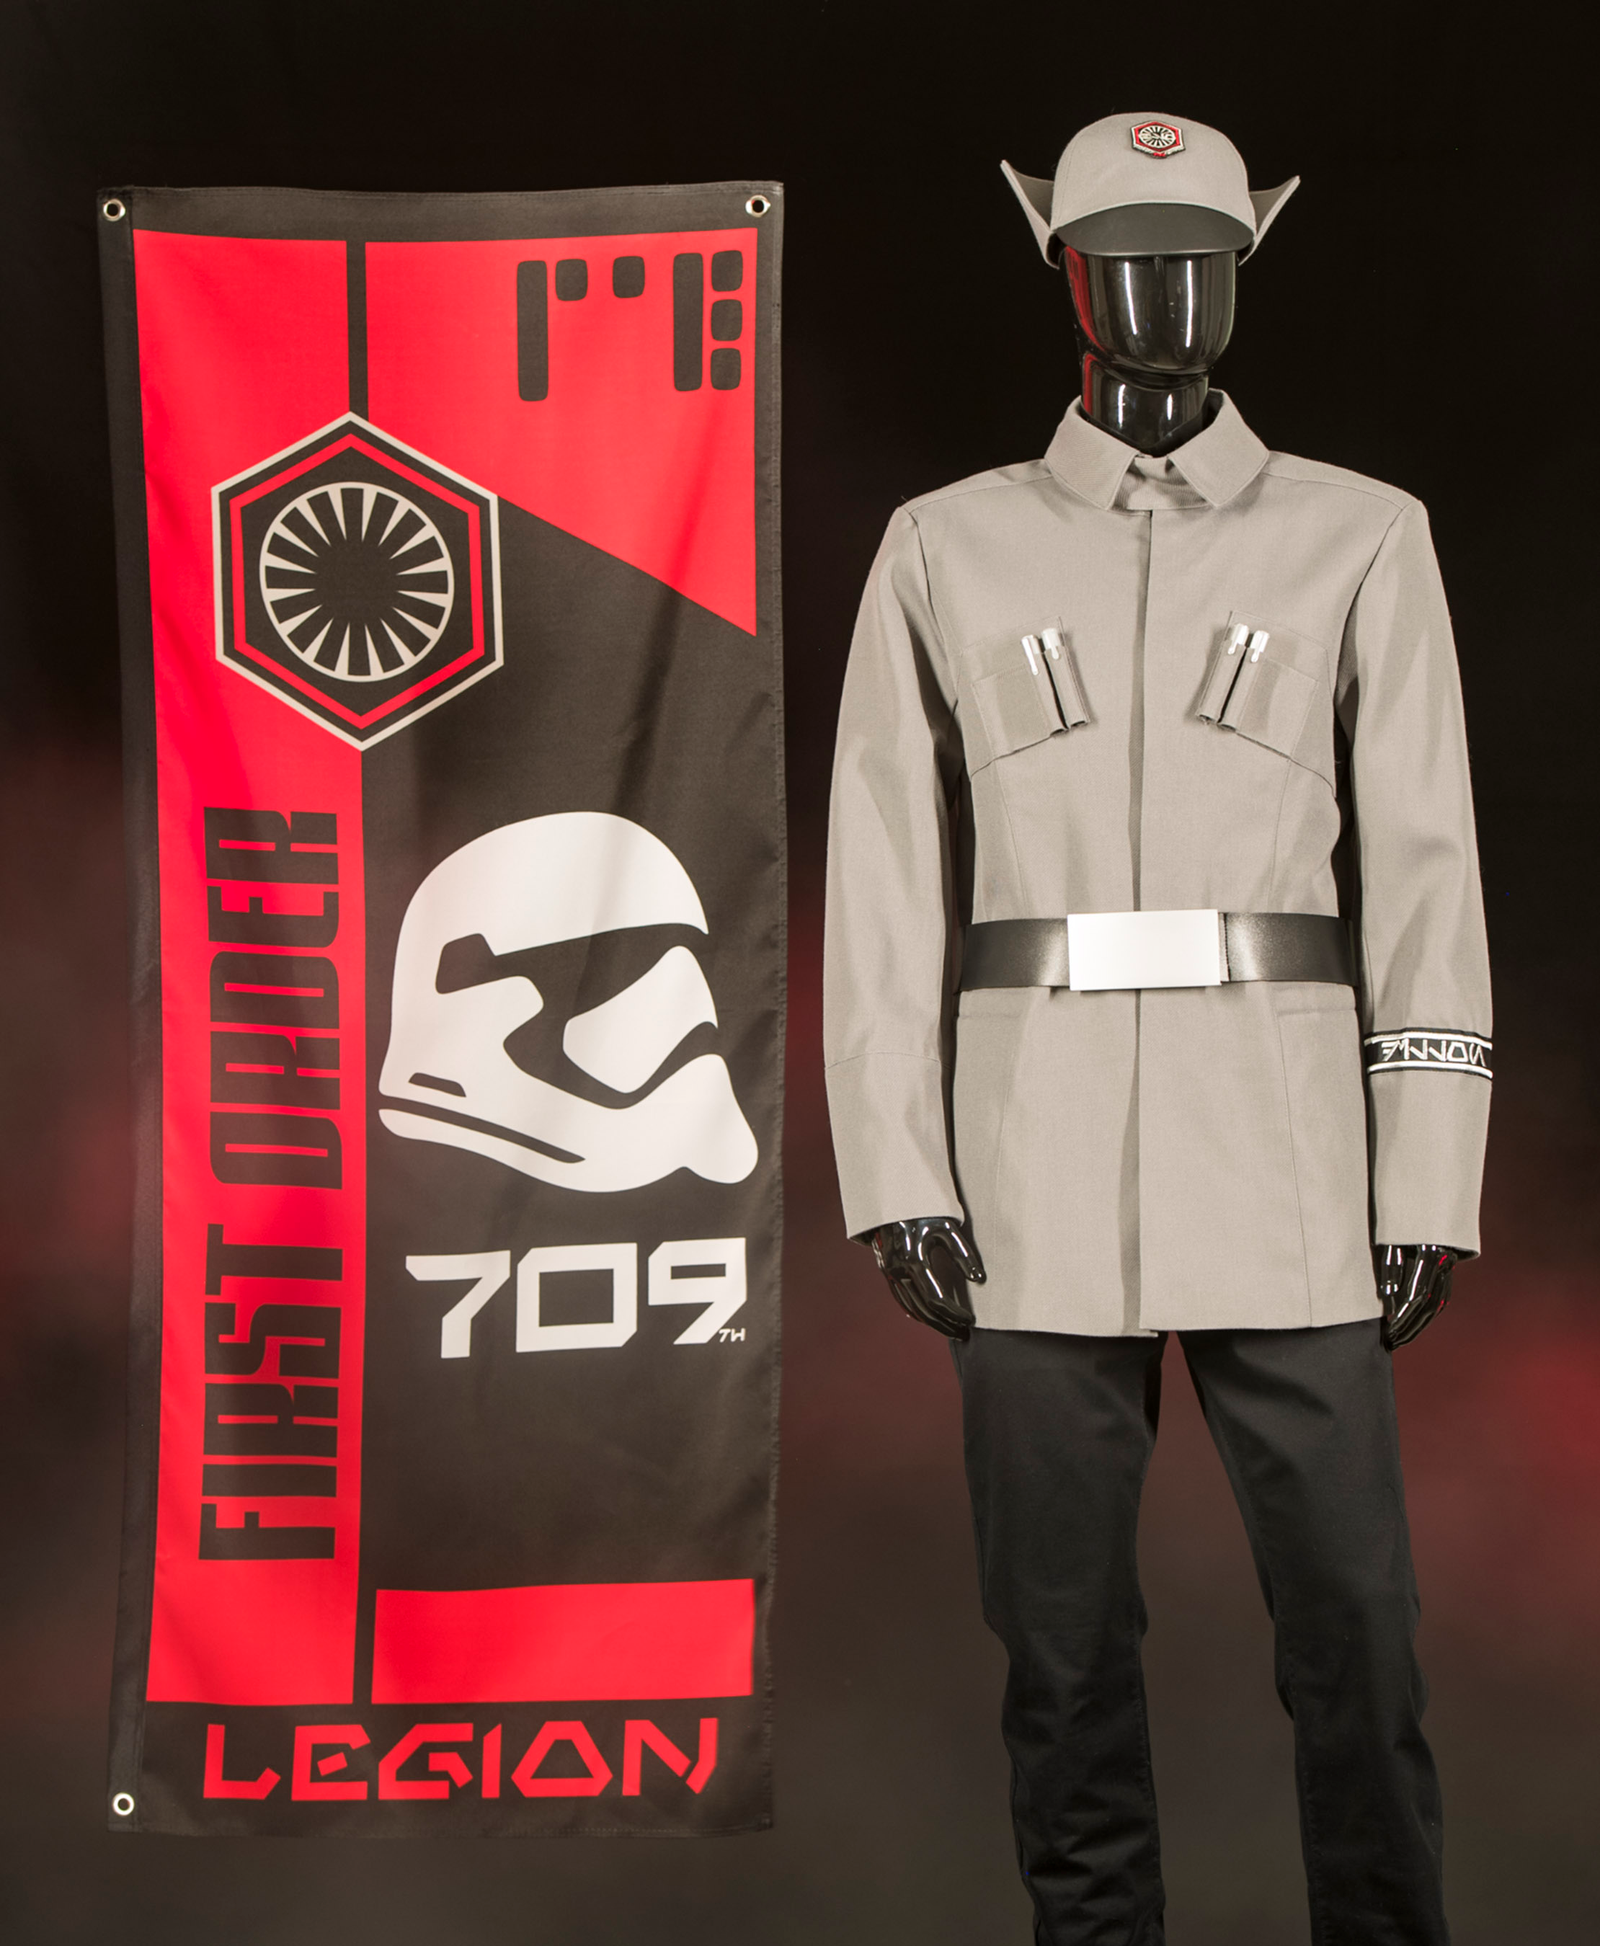 An example of First Order merchandise.